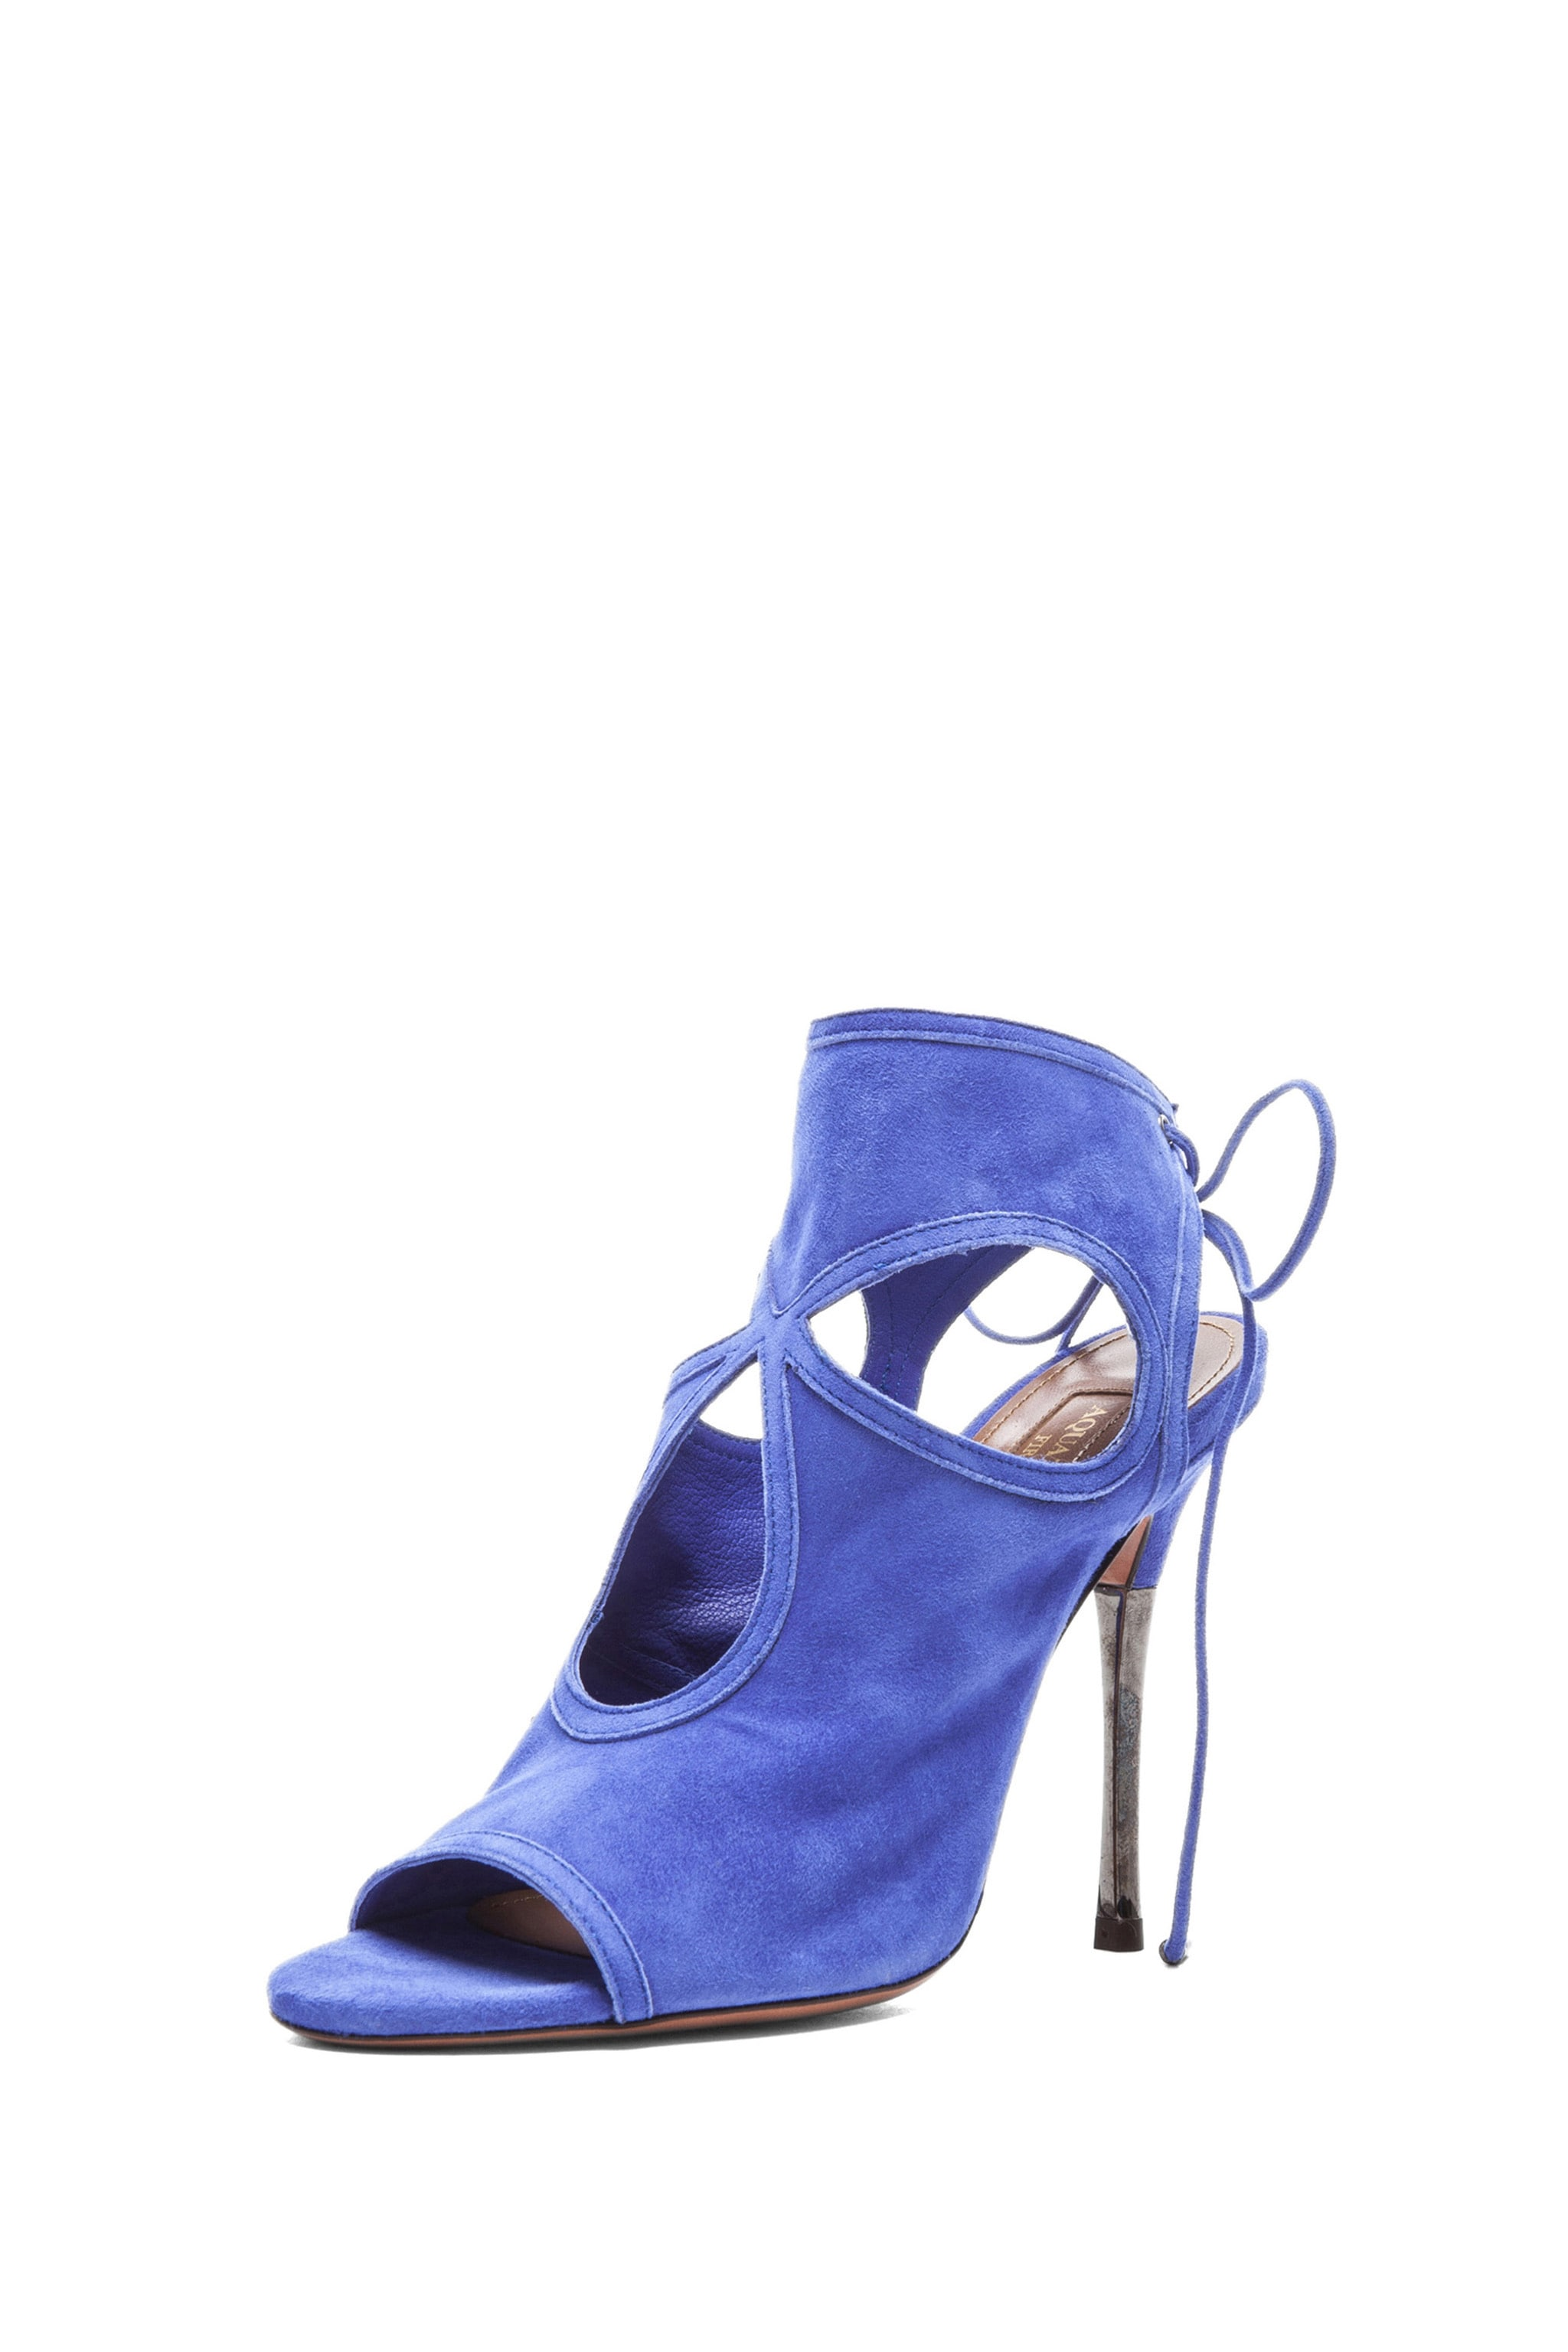 Image 2 of Aquazzura Sexy Thing Suede Sandals in Sapphire Violet